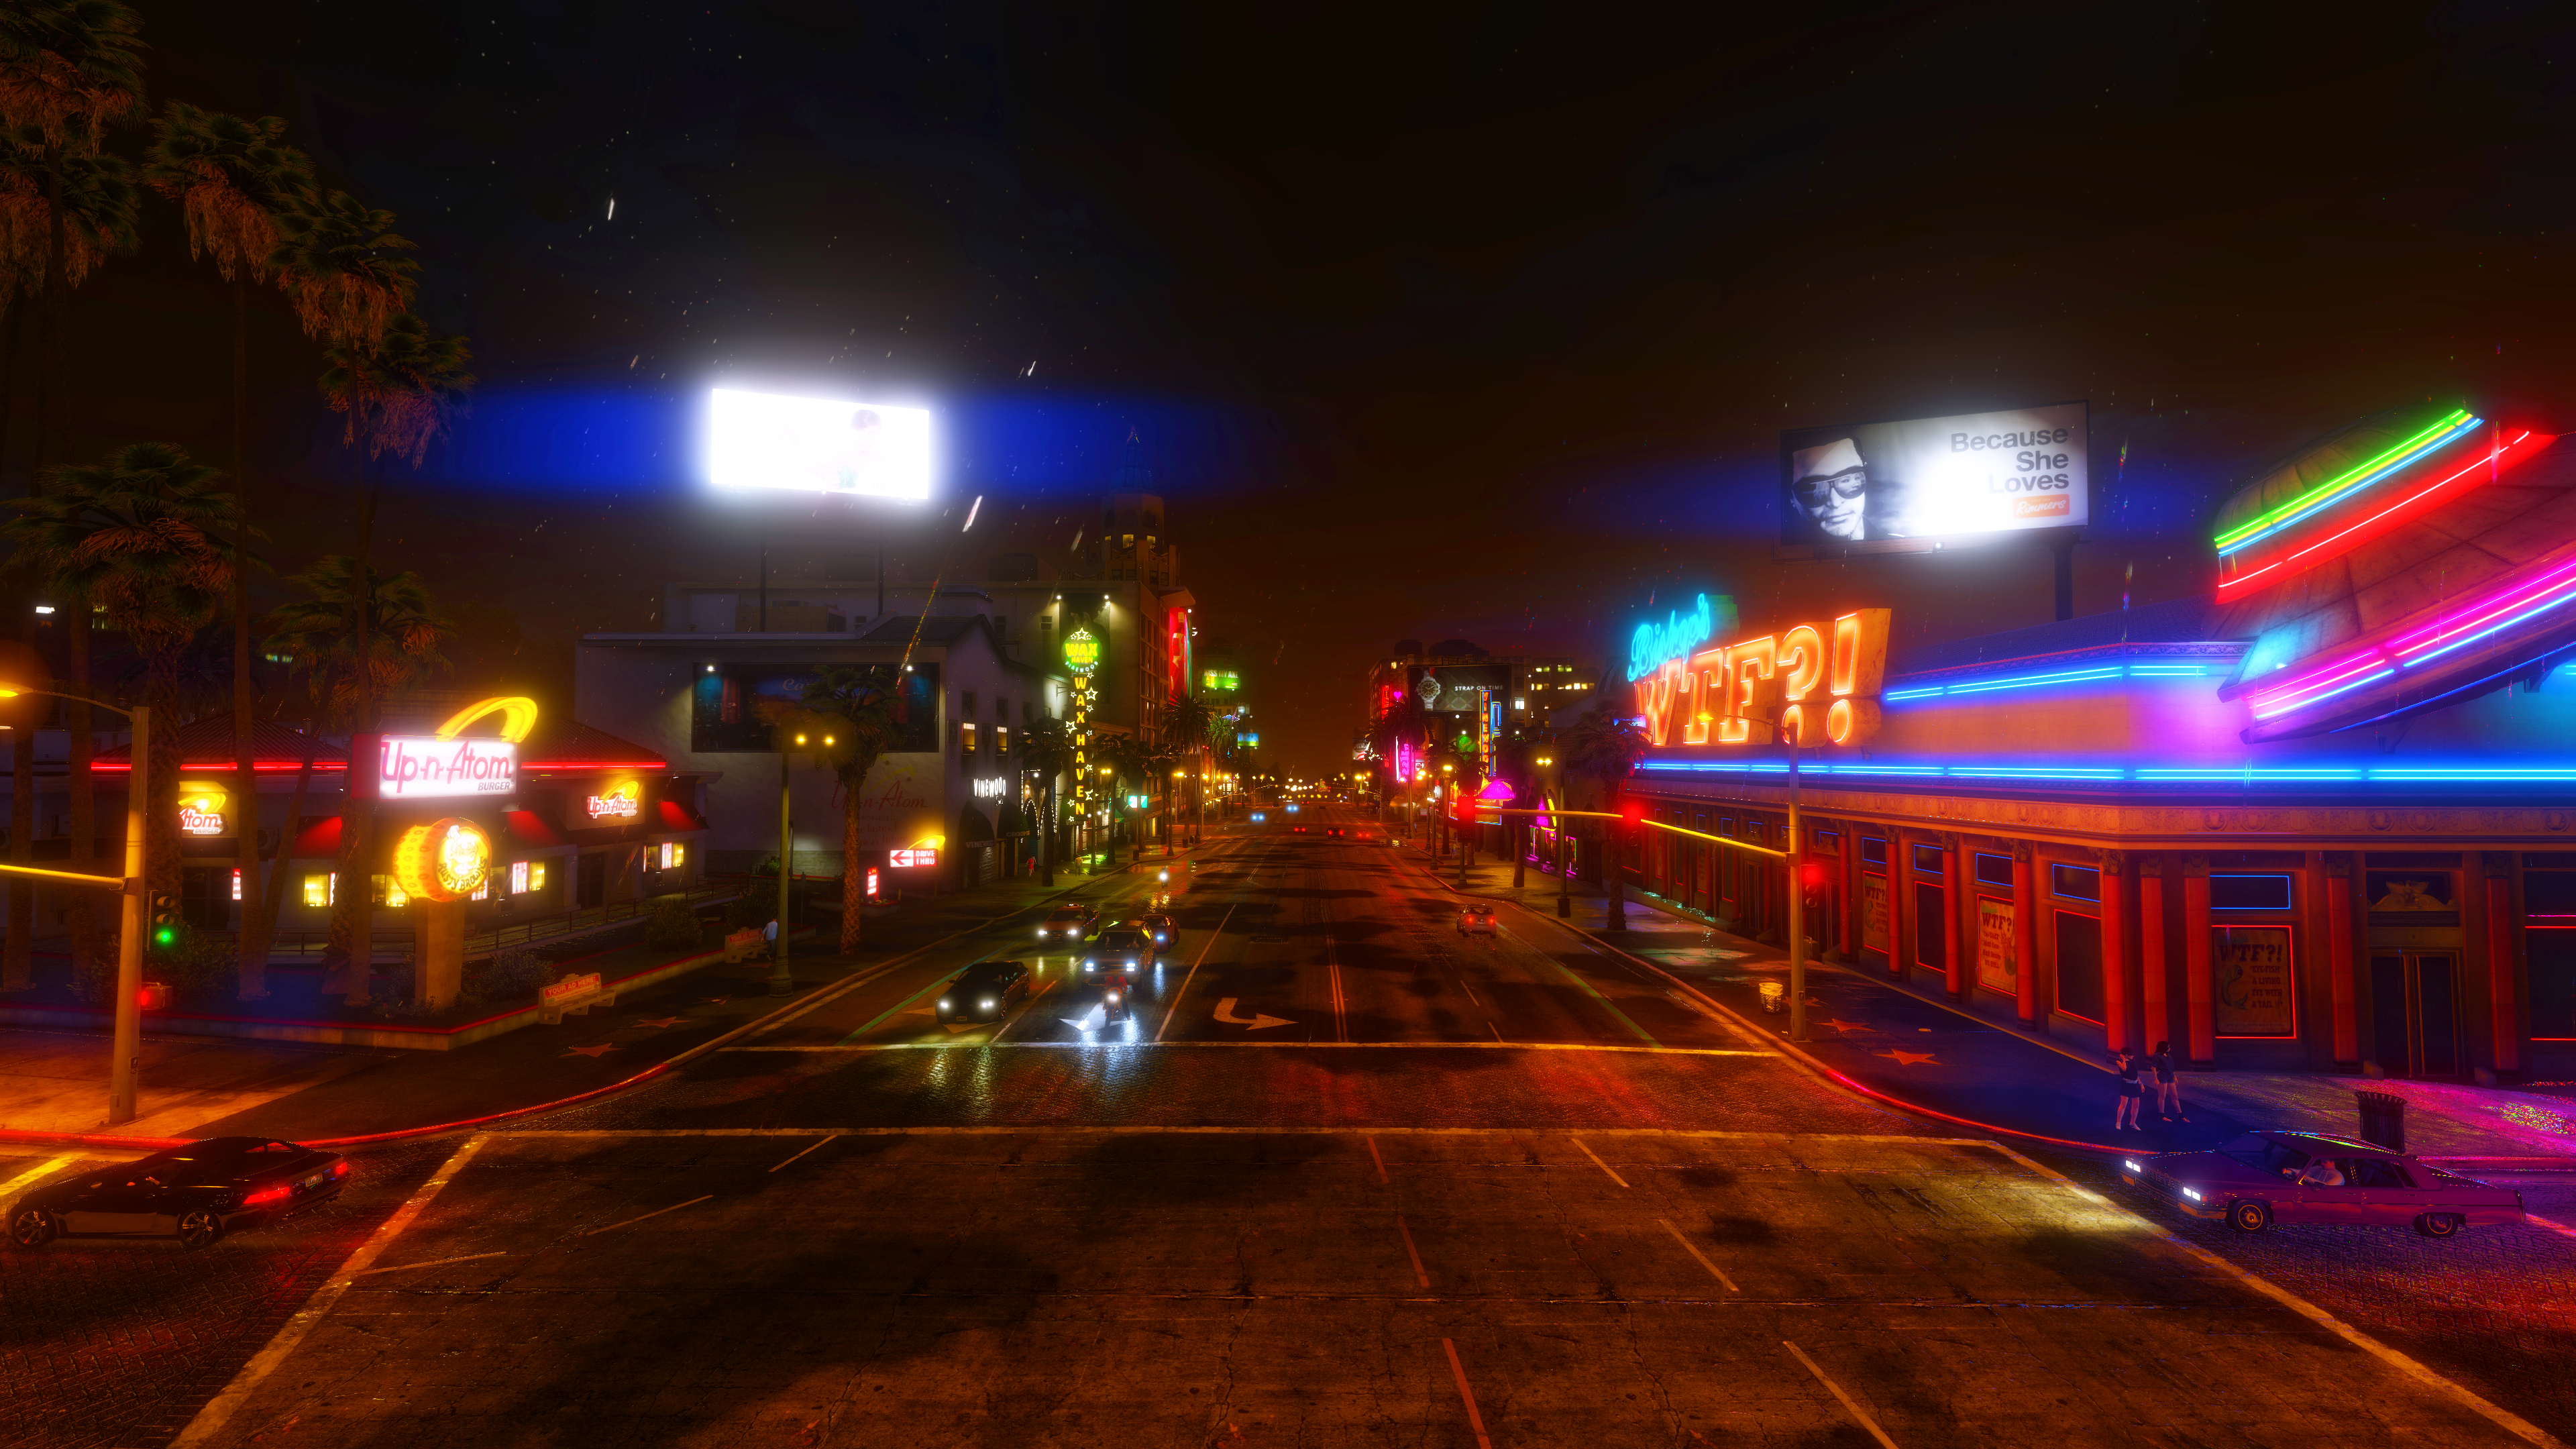 Gta V Night Rainy Wallpapers 4k By Eeveeone On Deviantart